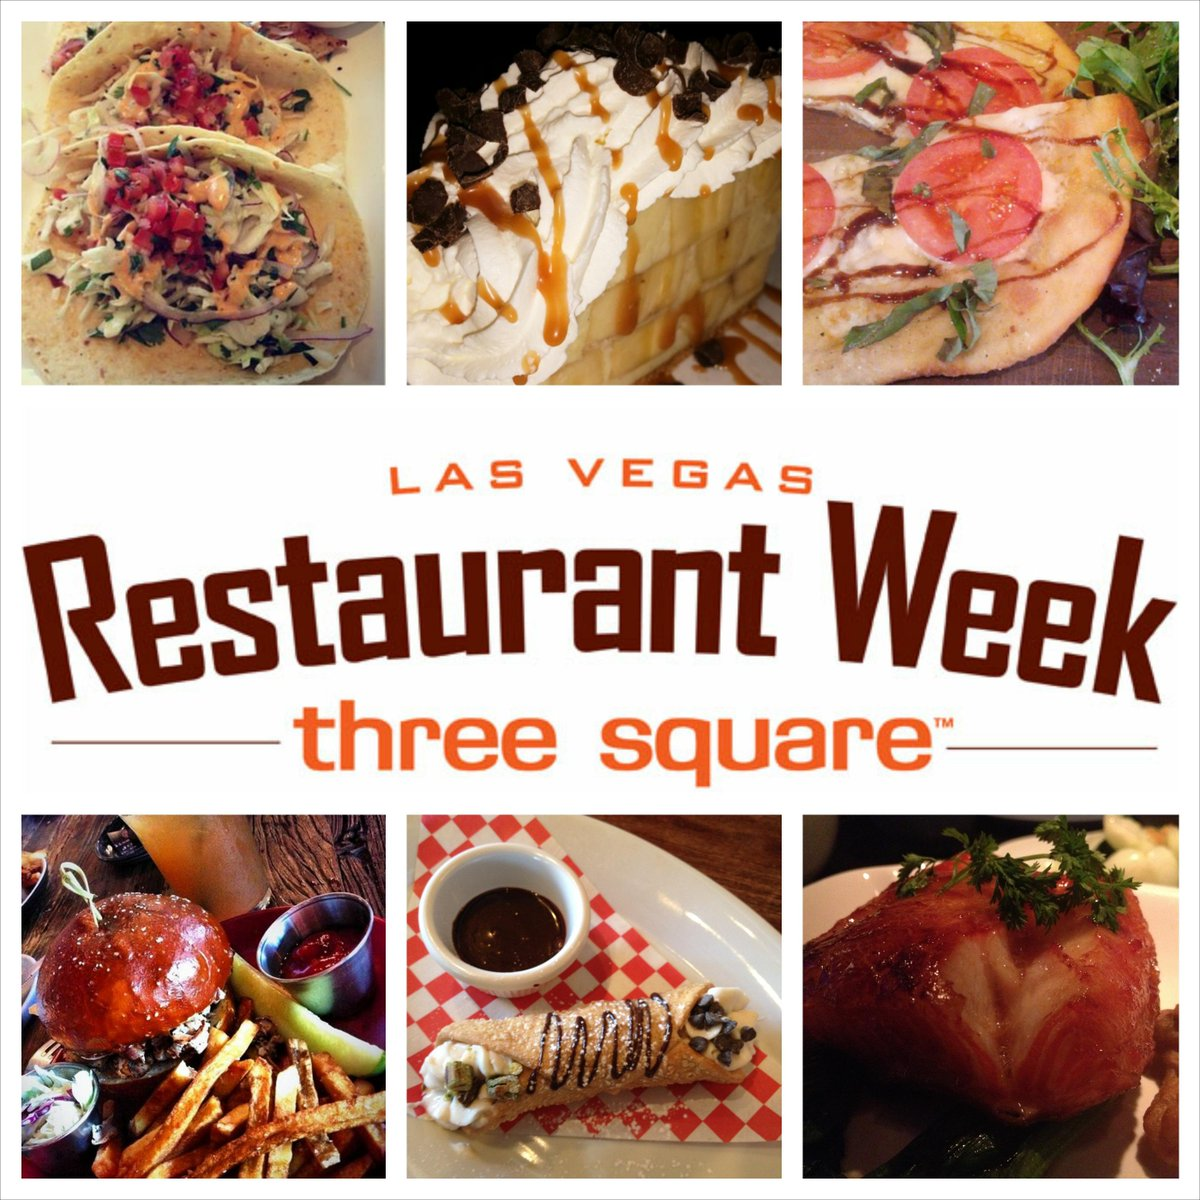 The time that you all have been waiting for has arrived. #LVRW menus are now up on http://t.co/NqKWaP4egK! http://t.co/8i0vGXZVhe